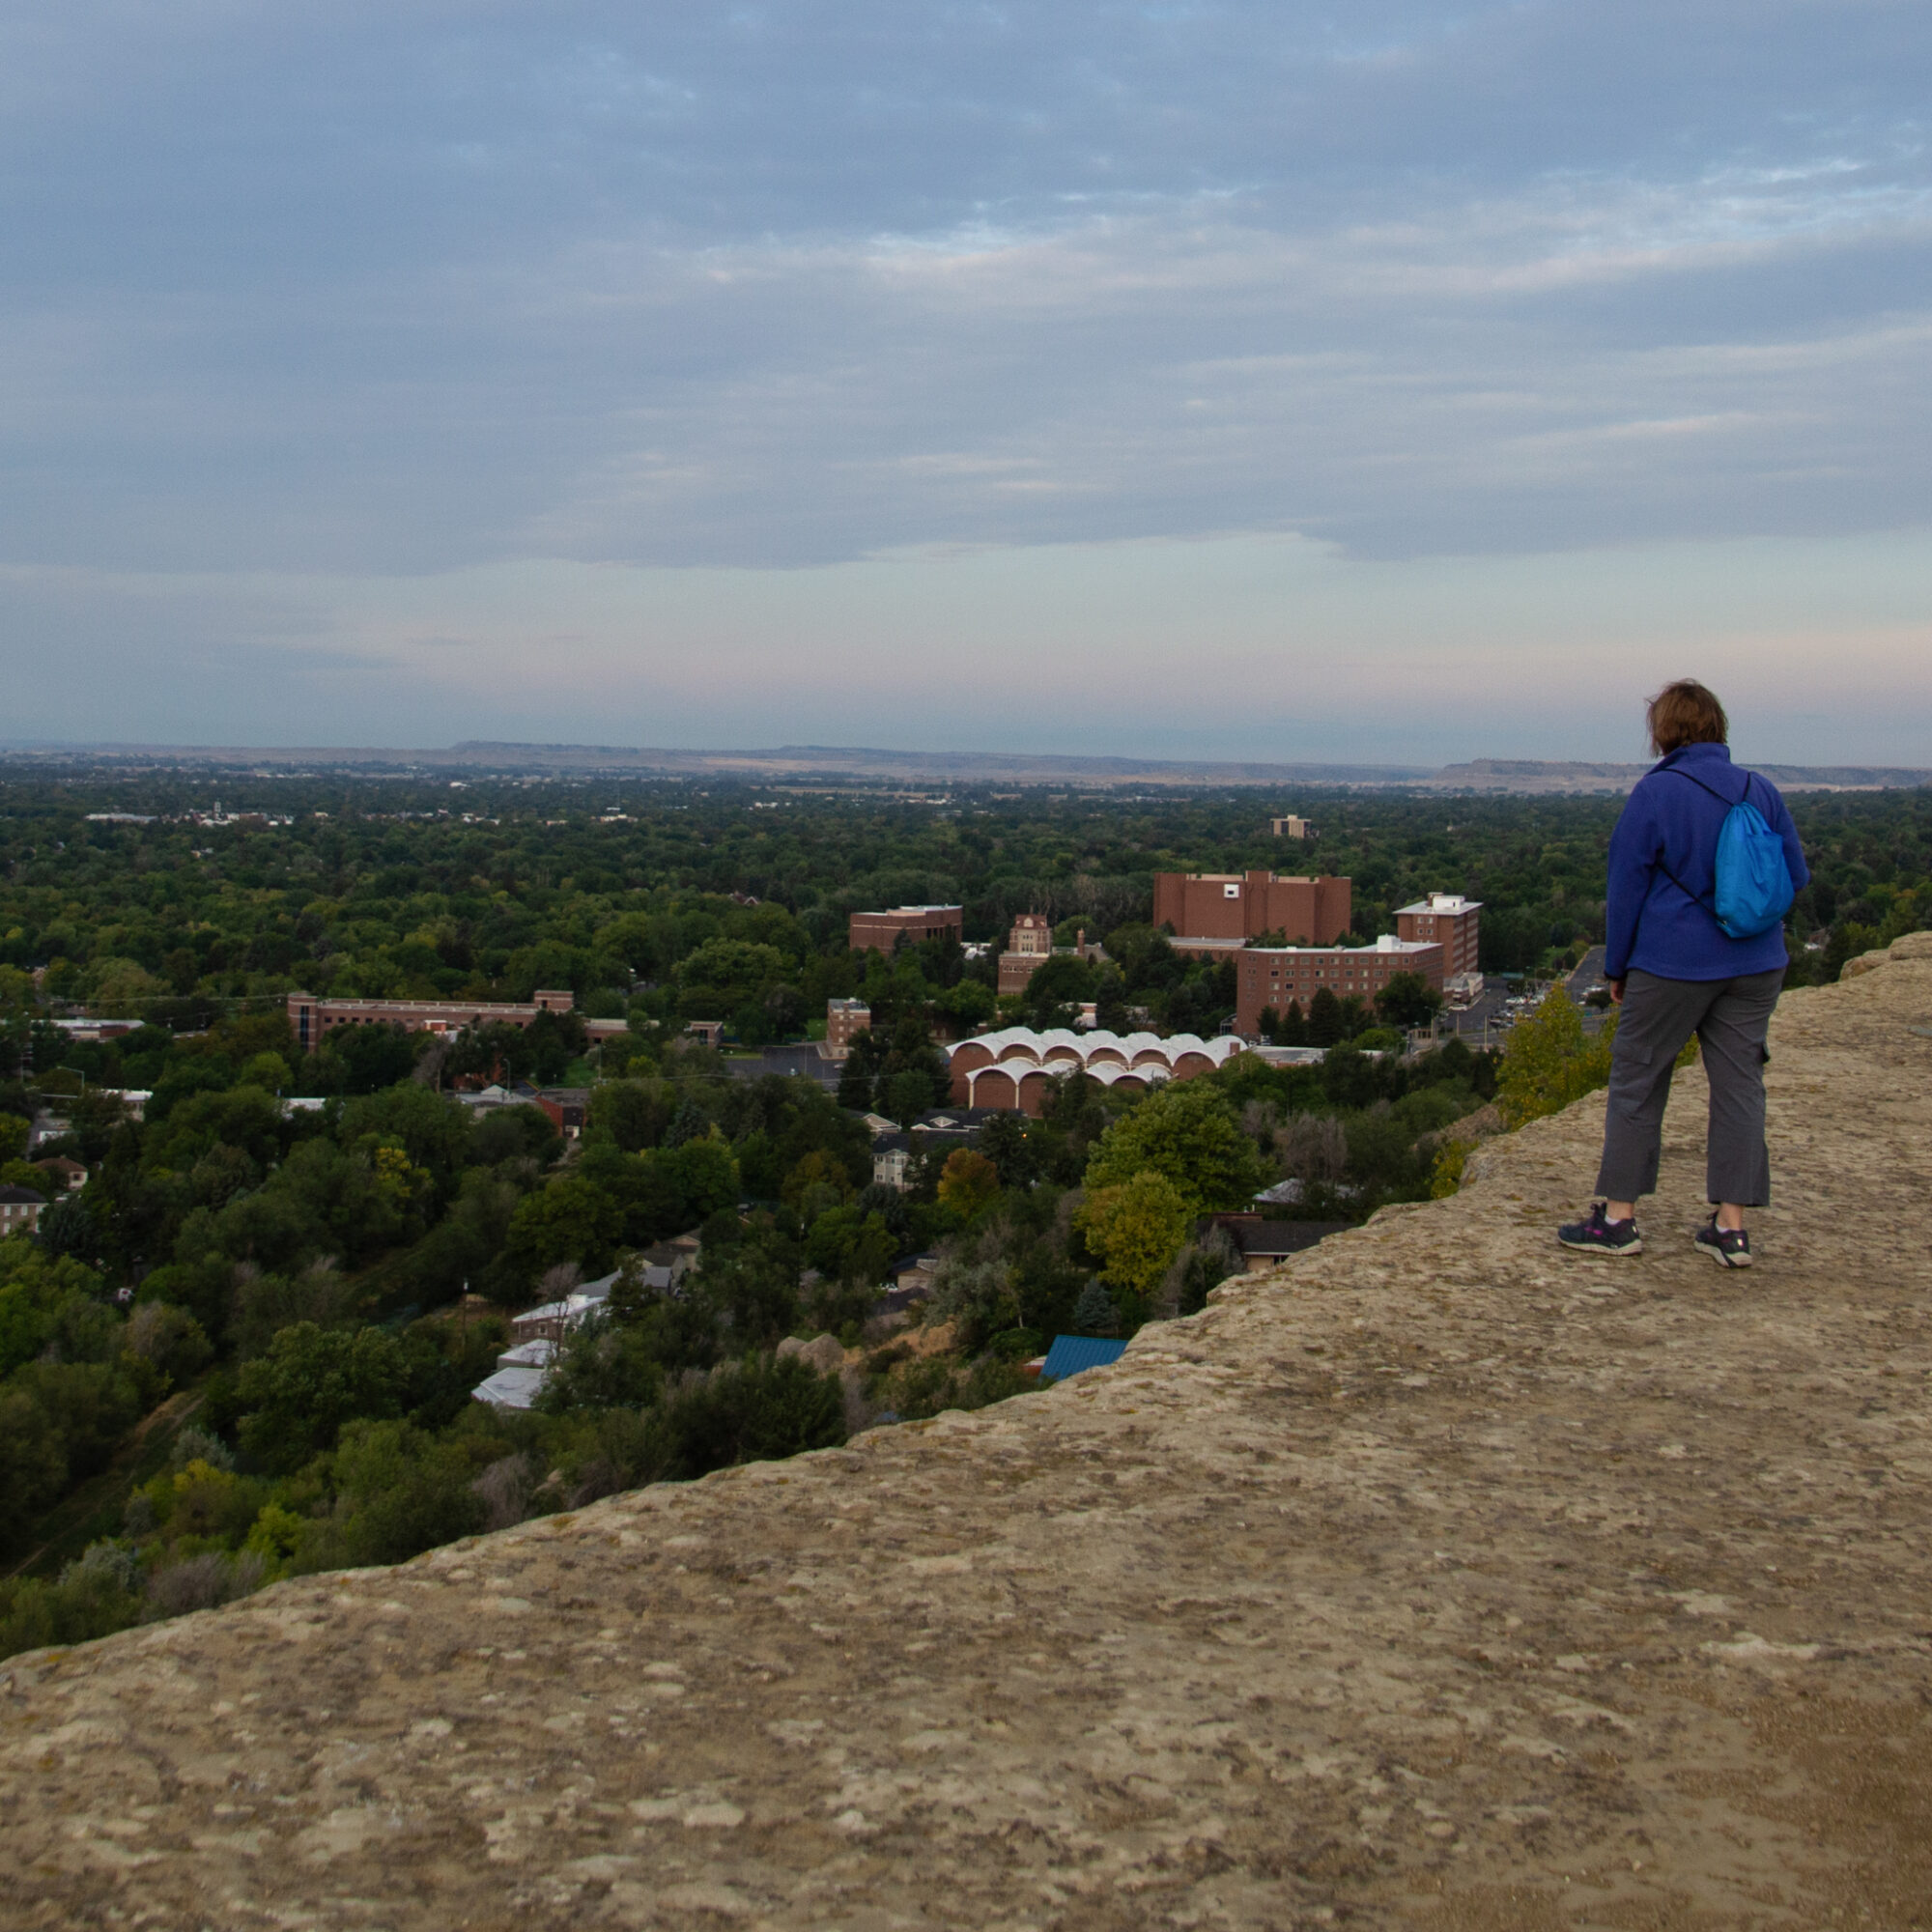 Views of Billings, Montana, from the Rims.